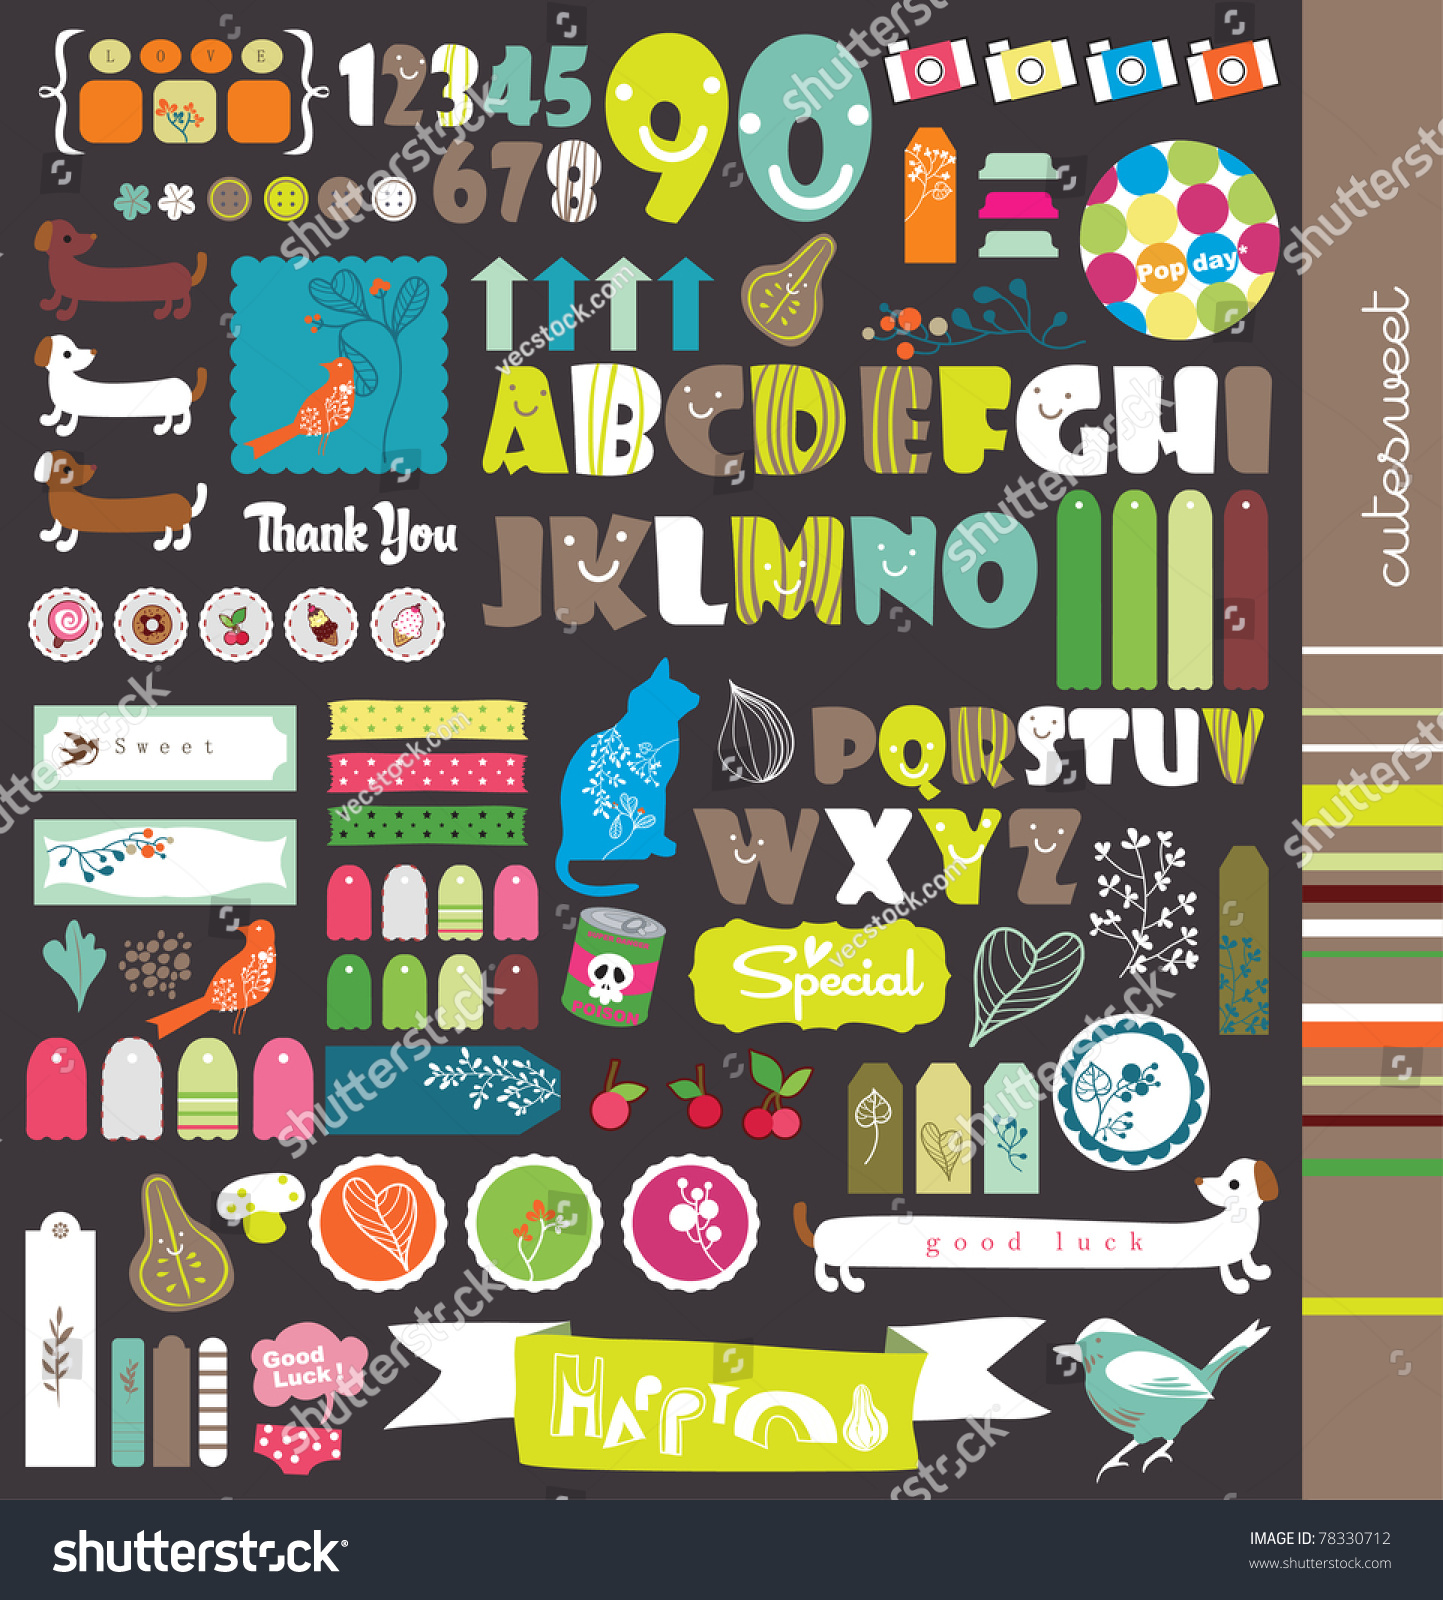 How to scrapbook letters - Scrapbook Elements With Letters